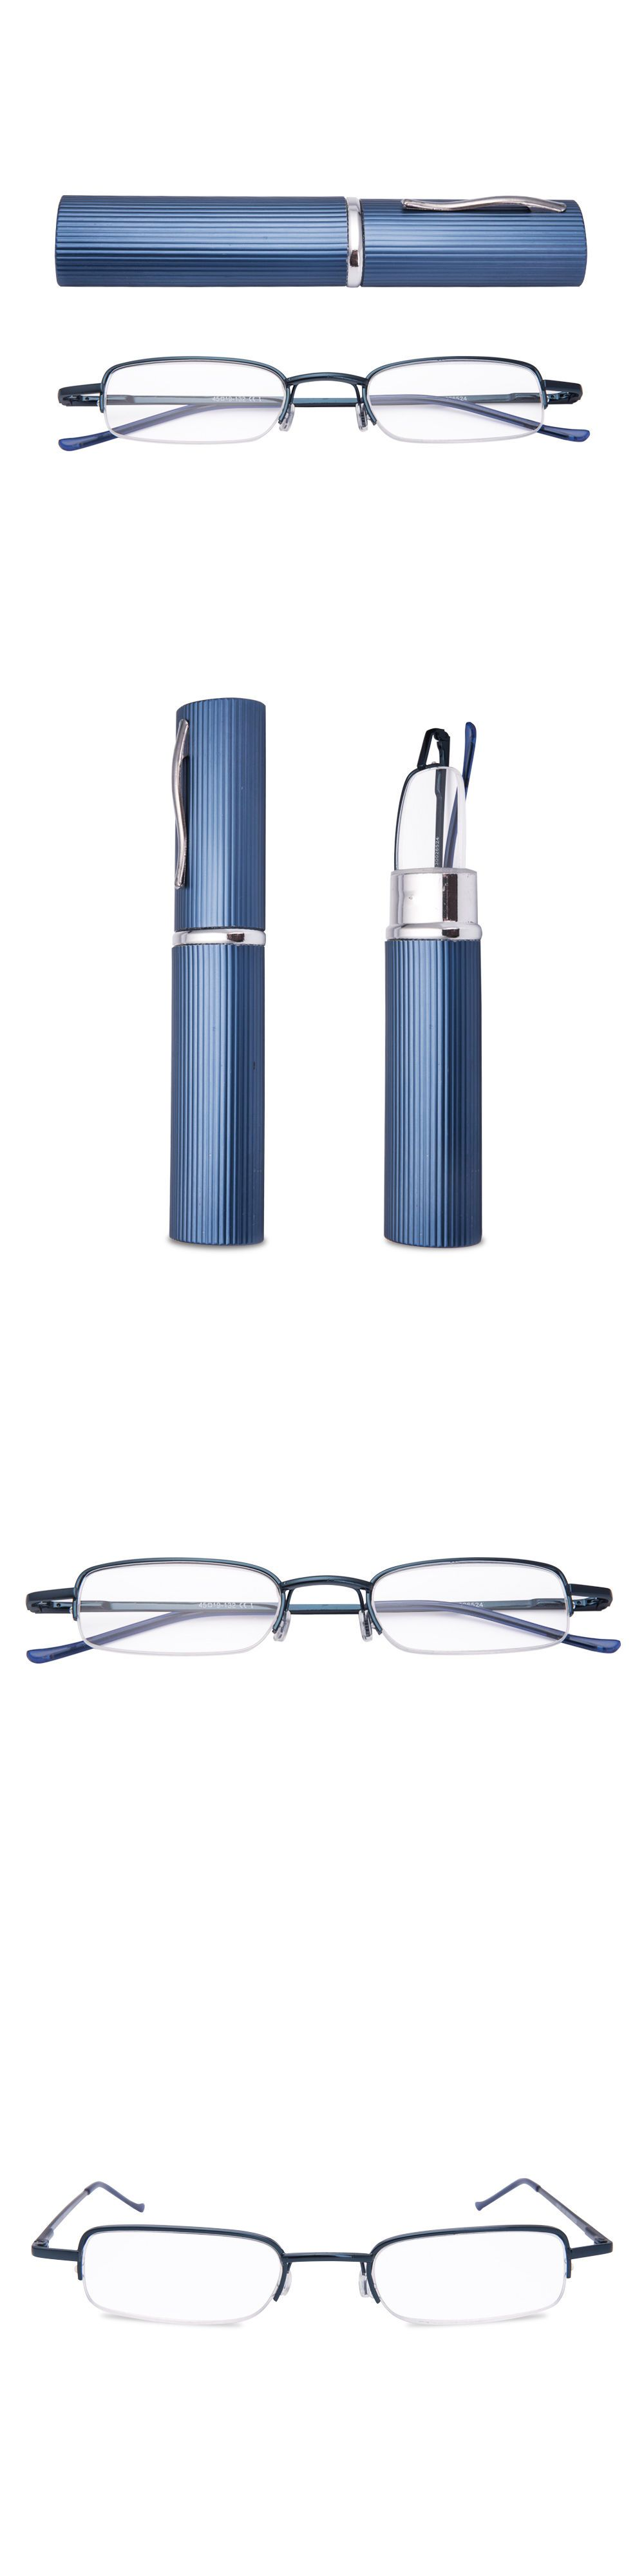 955b3a2425b Reading Glasses 67670  Pen Reading Glasses Metal Frame And Tube Case Mini  Size Slim Readers